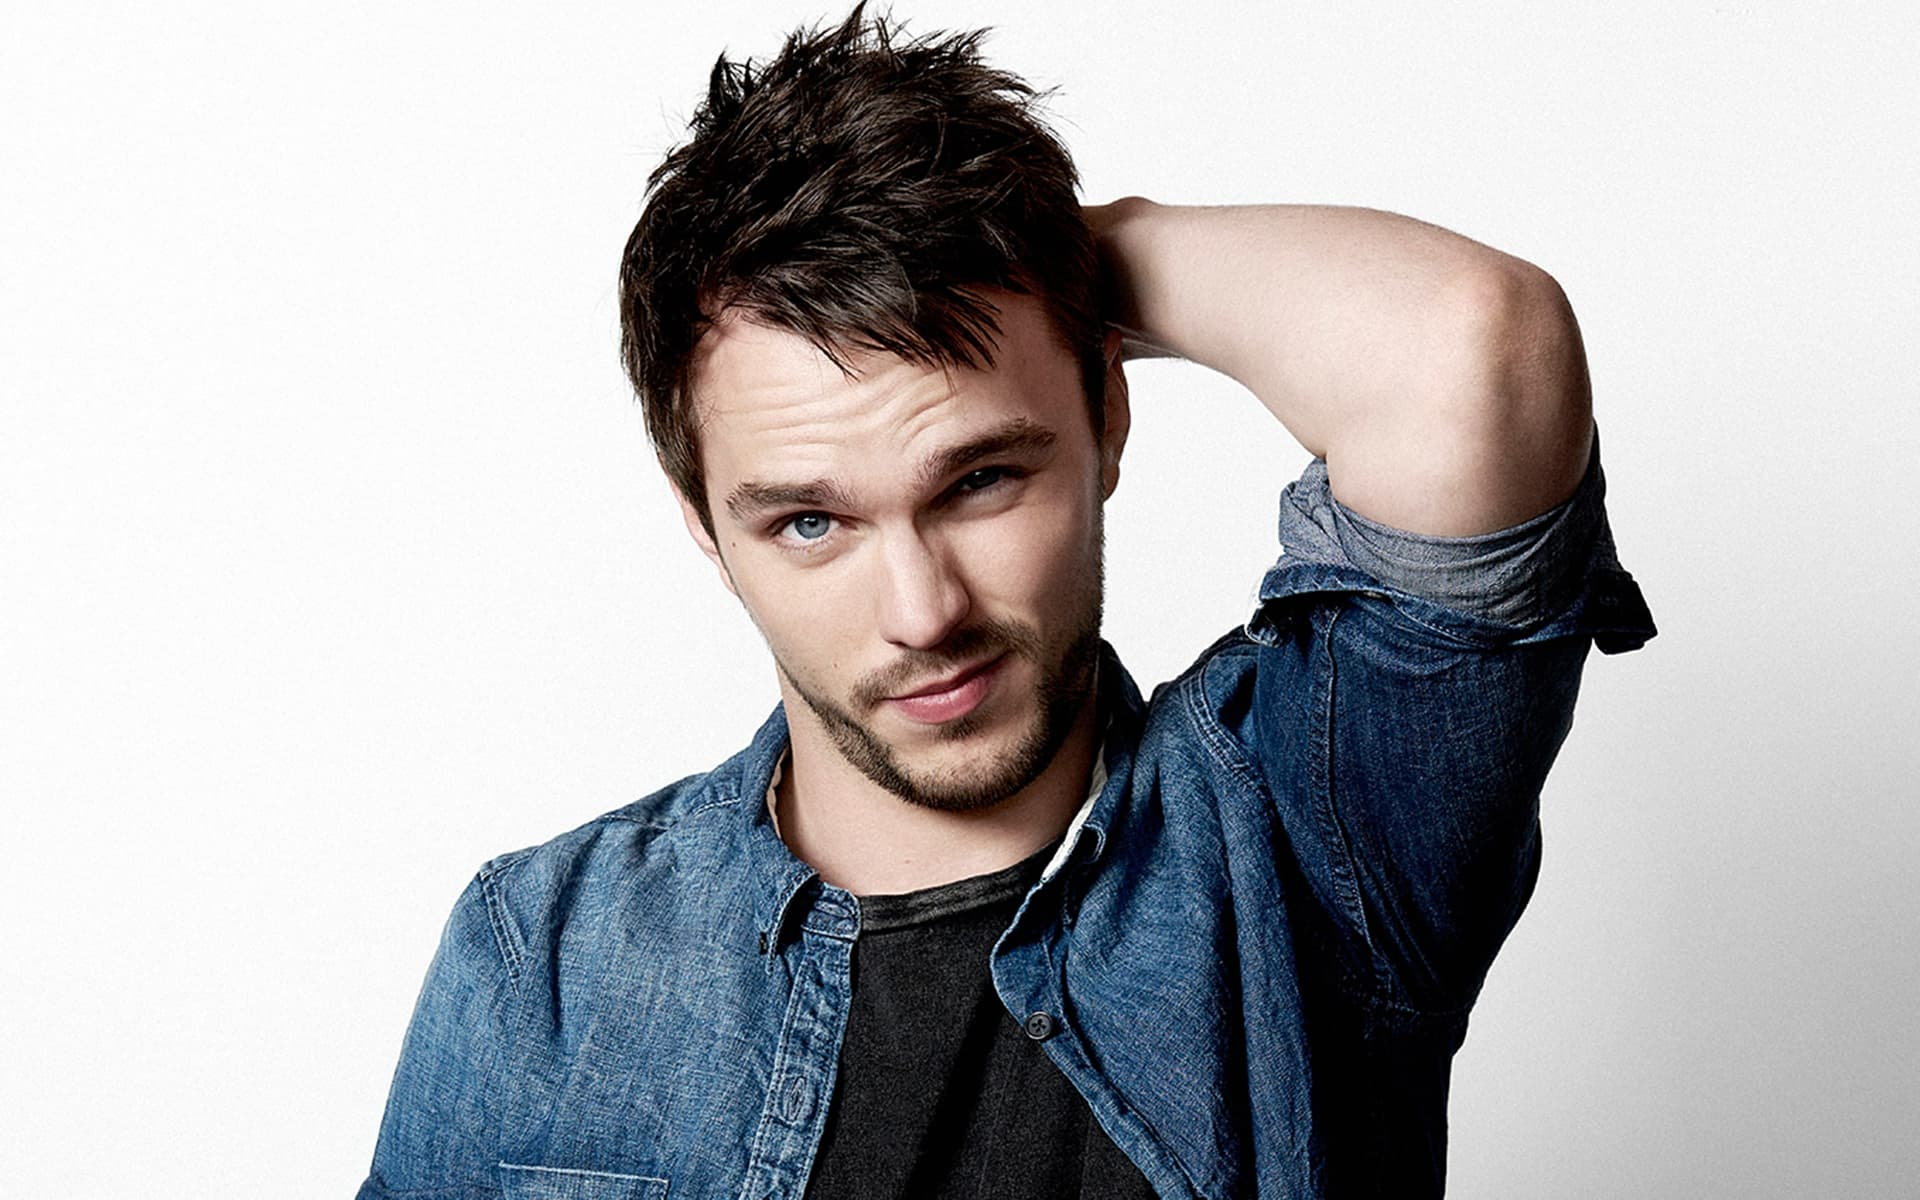 Nicholas hoult wallpaper   SF Wallpaper 1920x1200